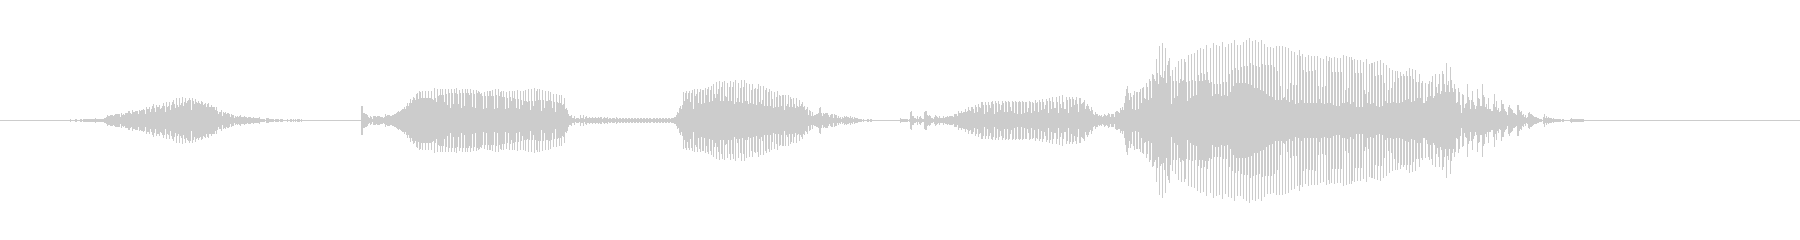 """6-year-old girl """"lucky bag""""-01's unreproduced waveform"""